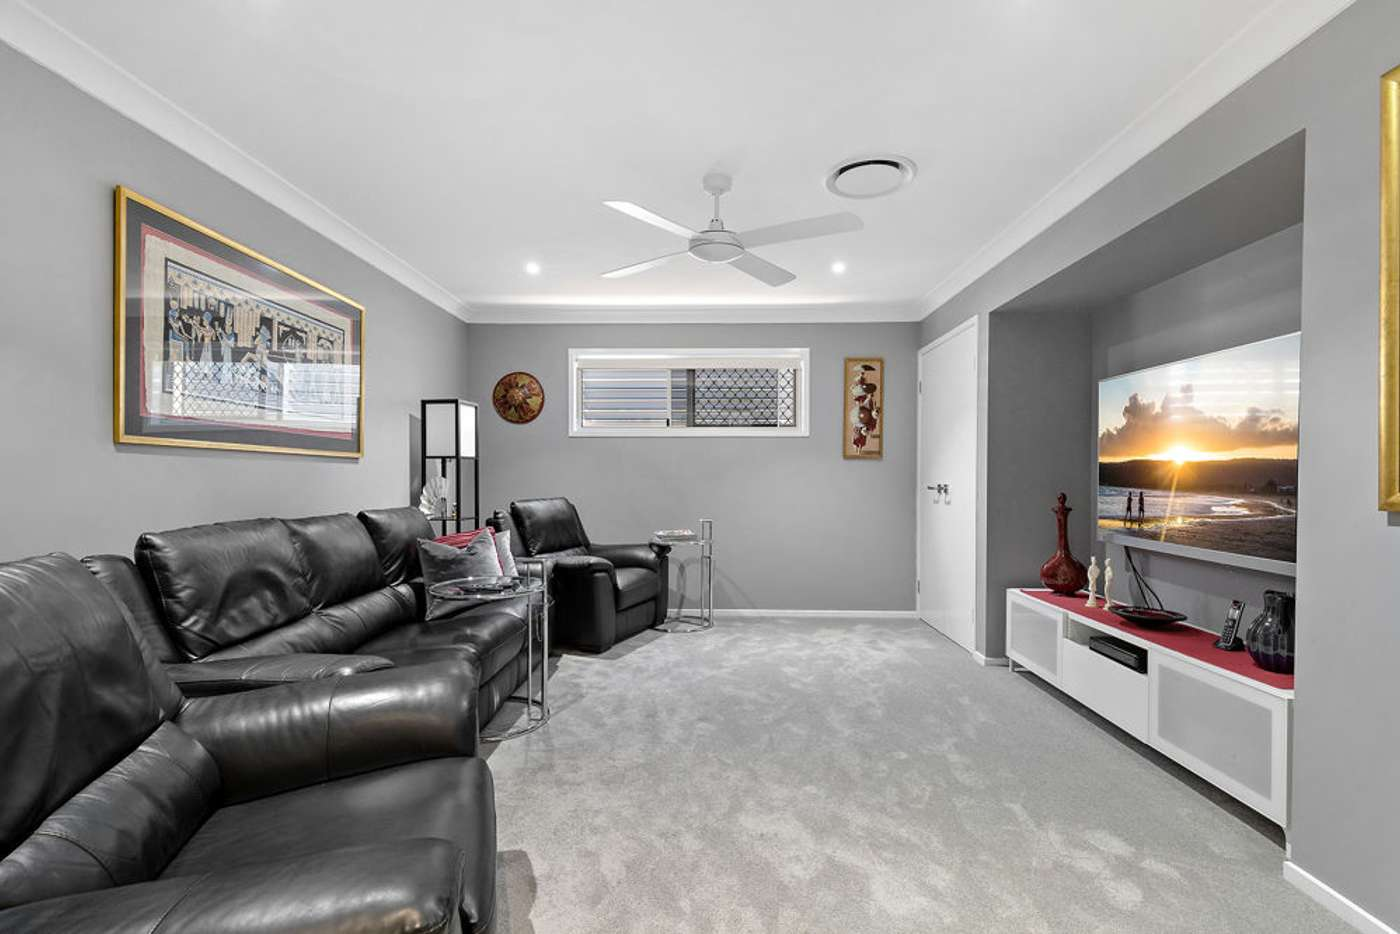 Fifth view of Homely house listing, 64 Chatham Street, Margate QLD 4019